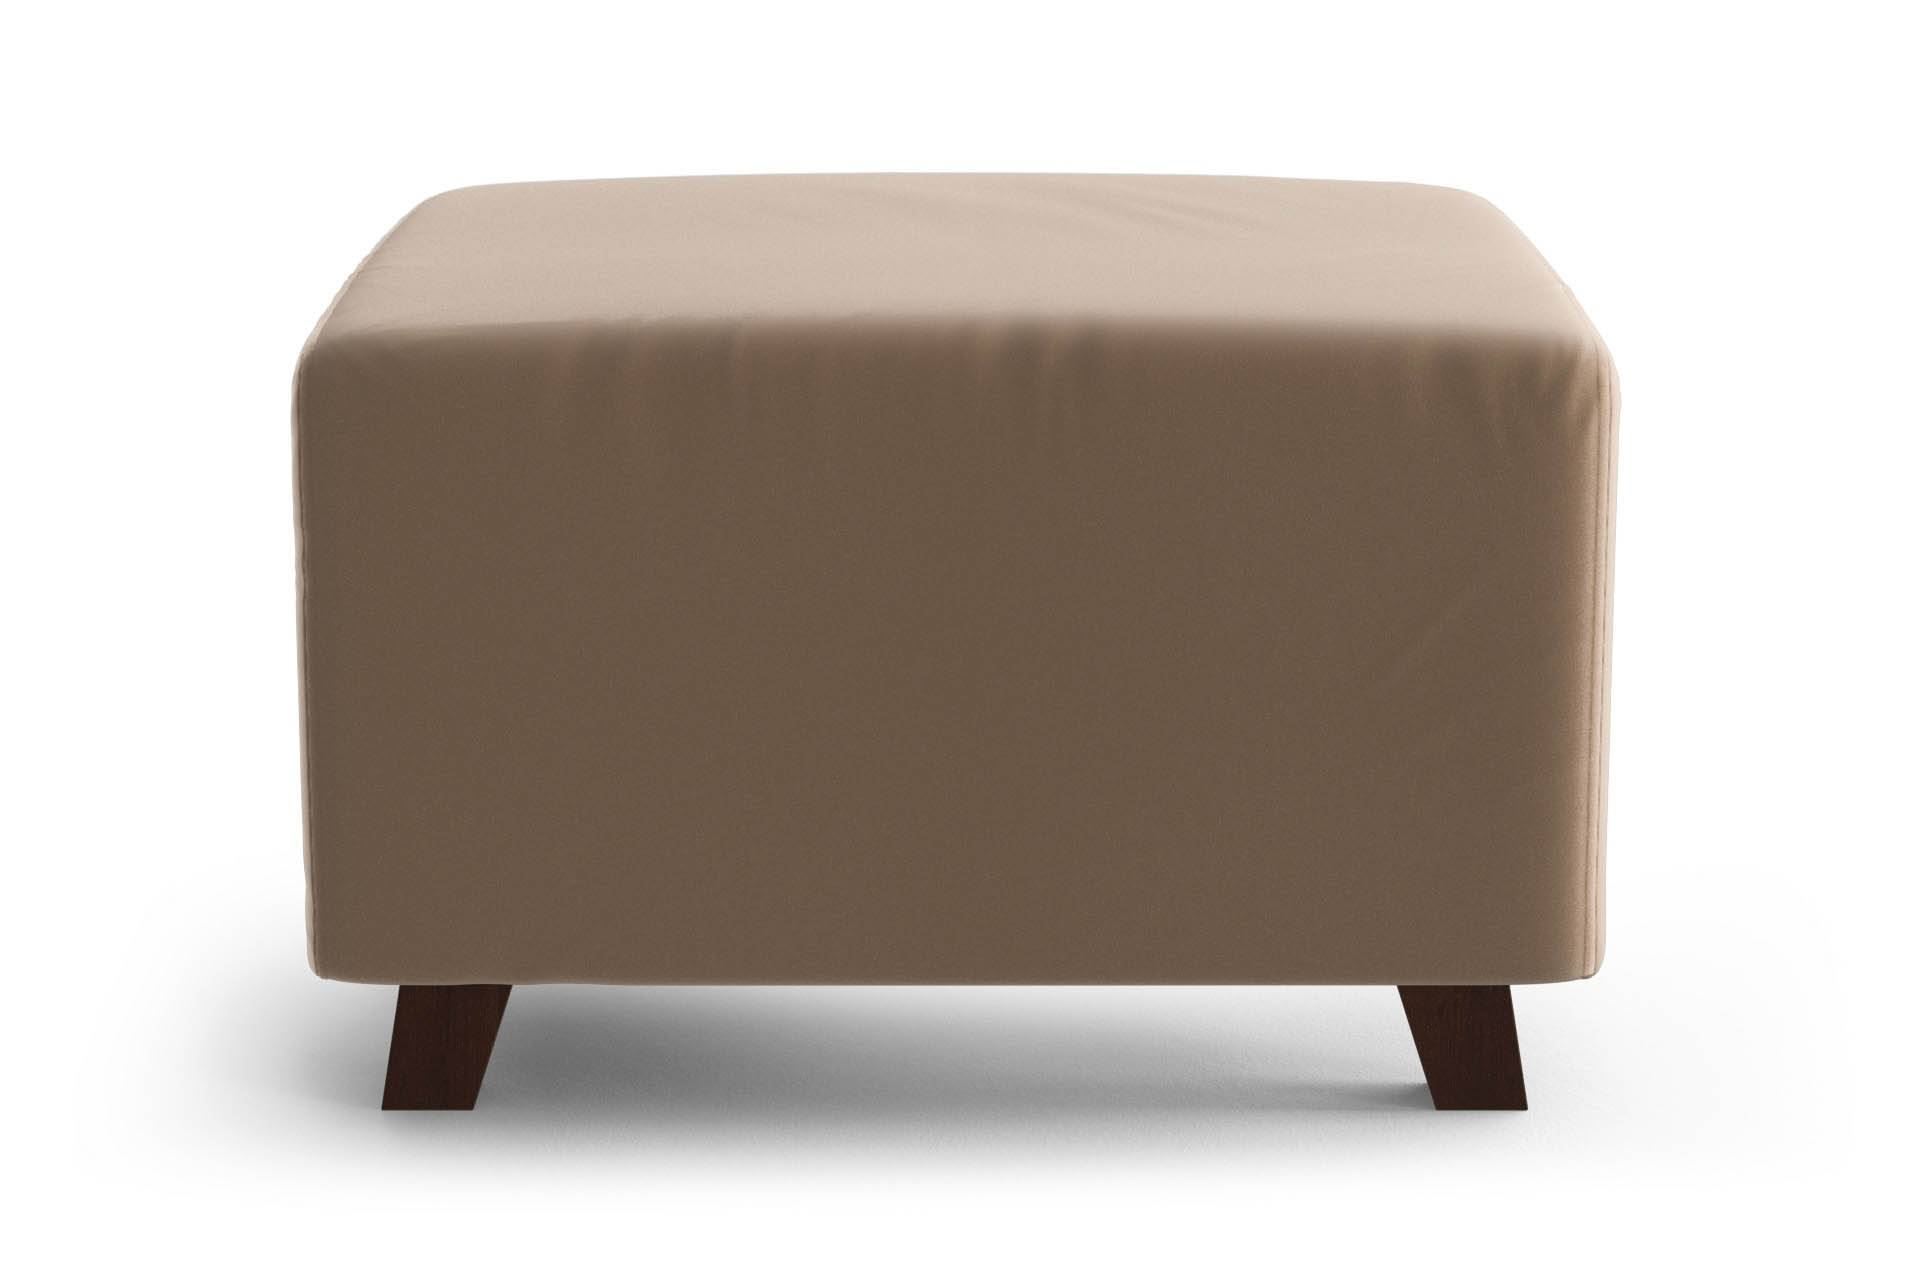 My Pop Design Pouf 1 Place Sable My Pop Design Cambronne Toucher Velours Pieds en Bois Naturel